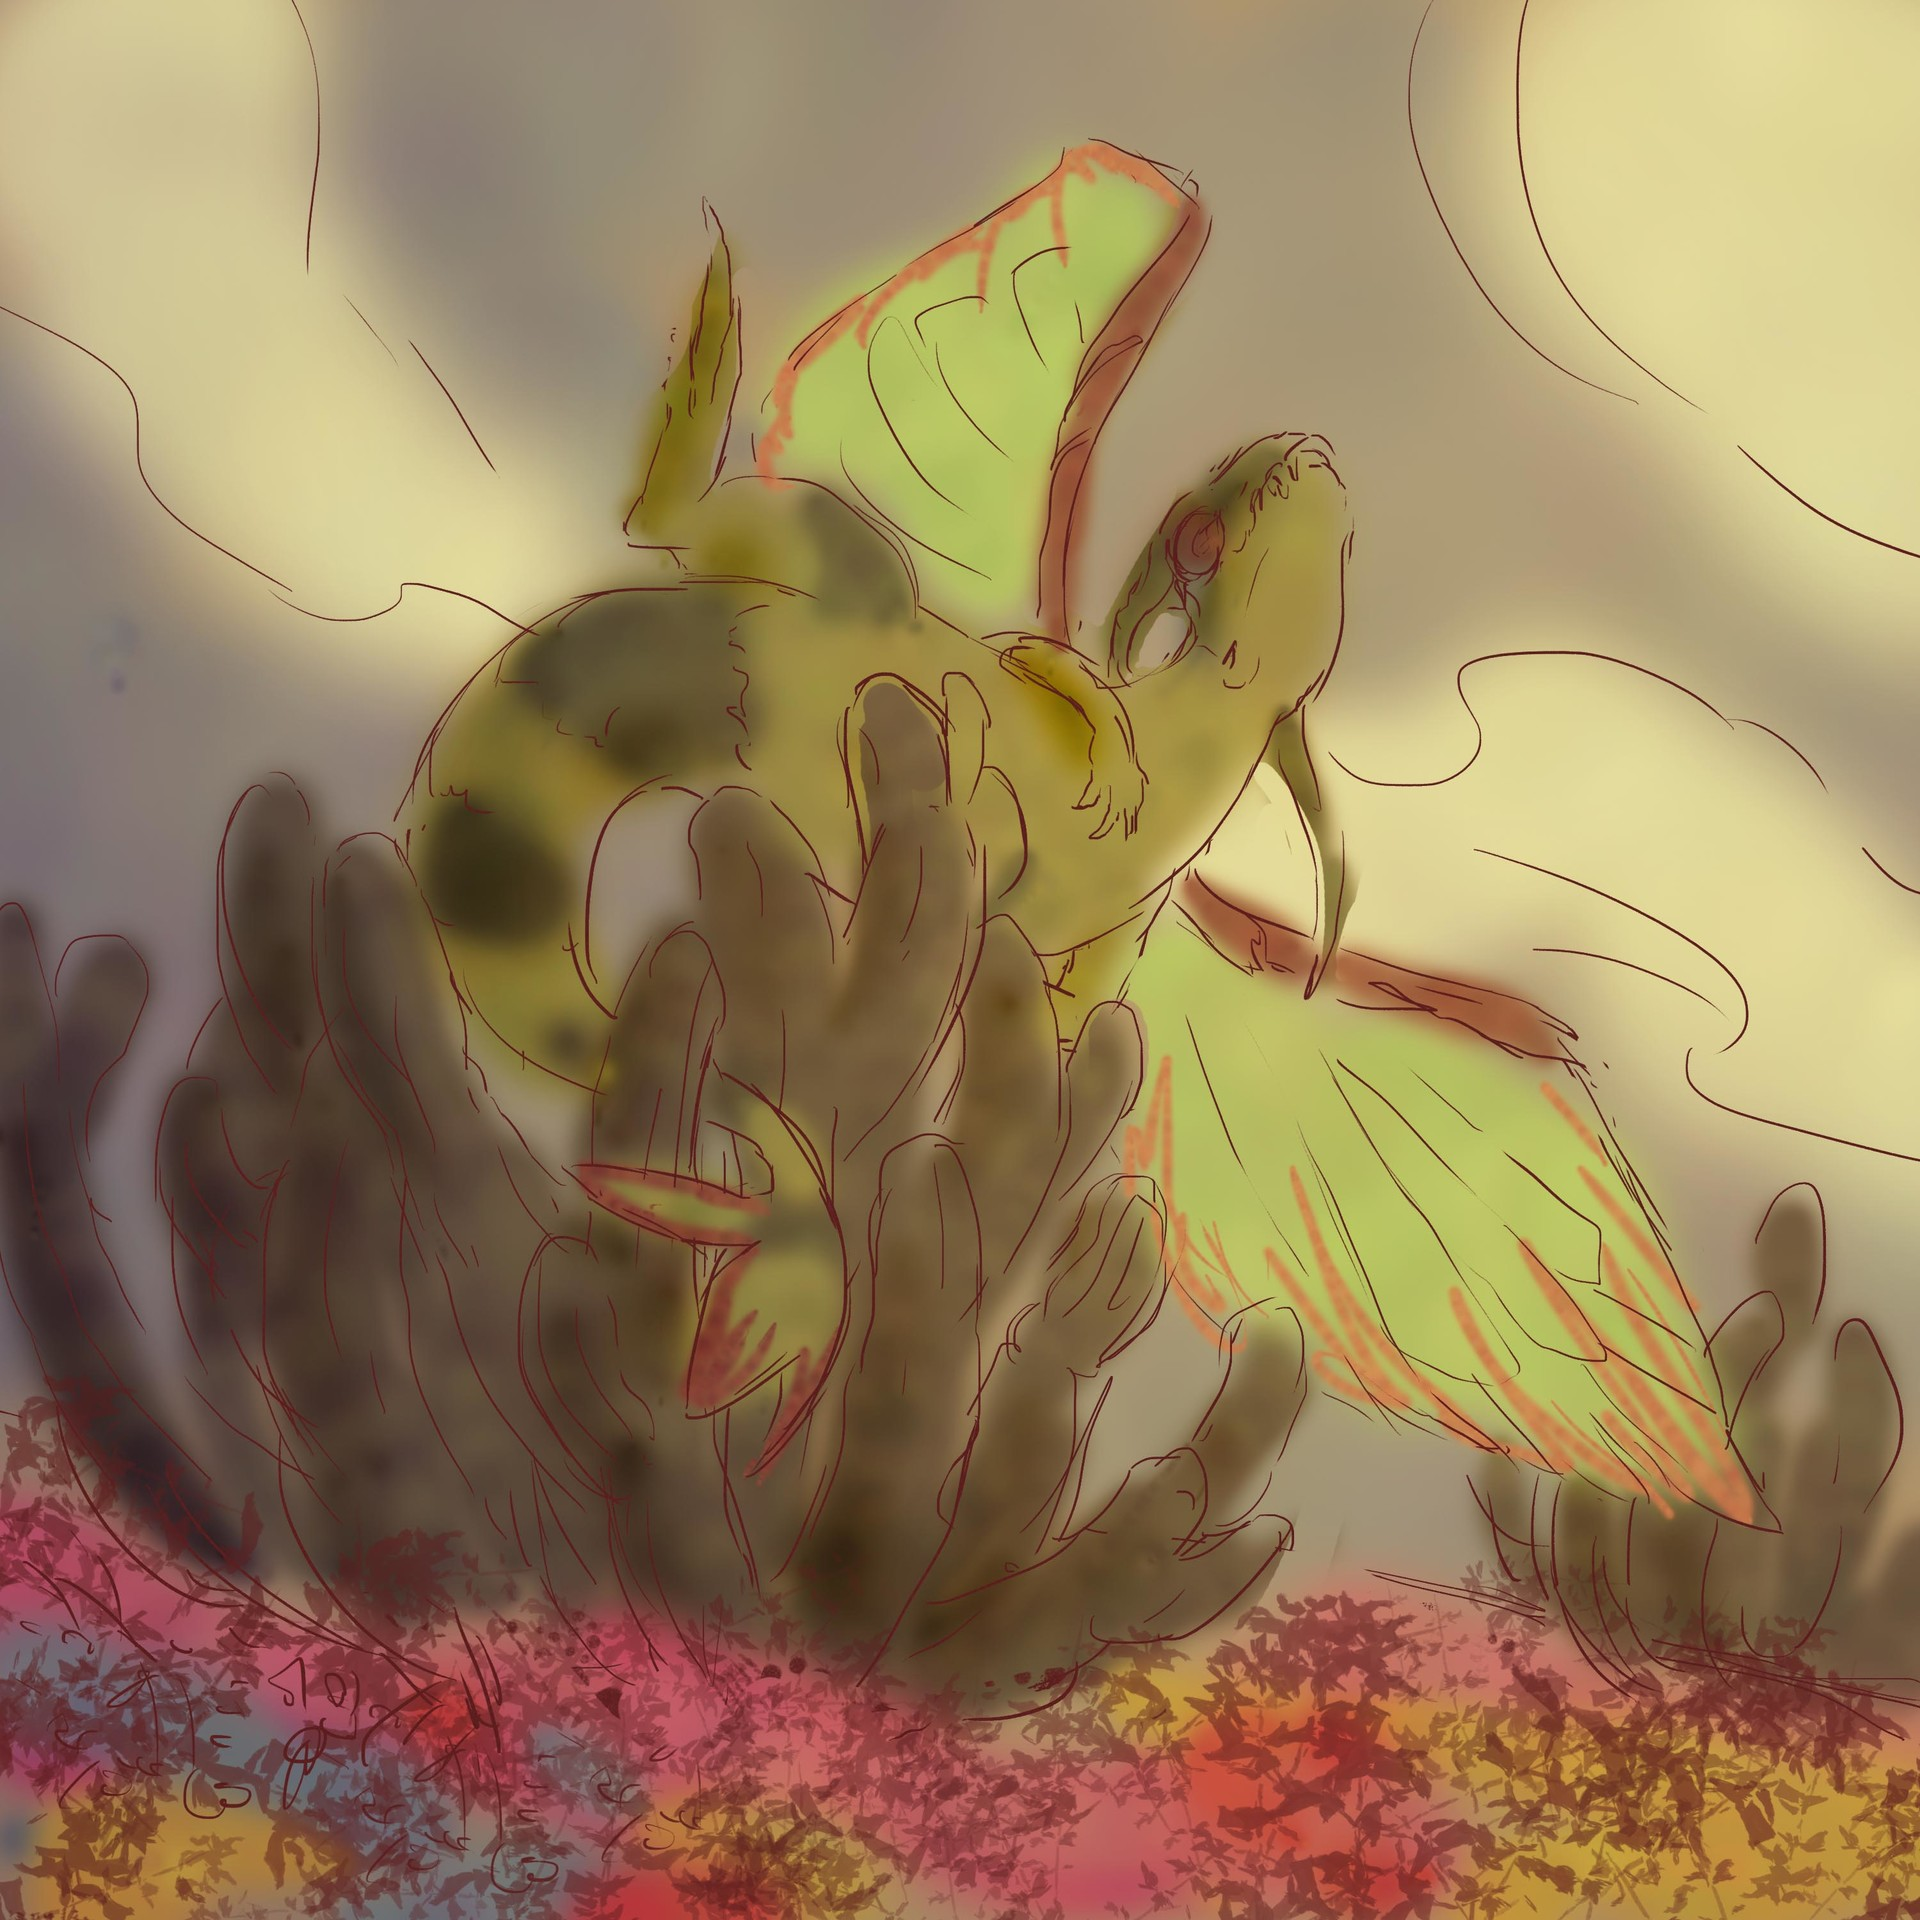 Sketch 1 - Flygon rejoices scrathing its back on the flowering desert cacti.